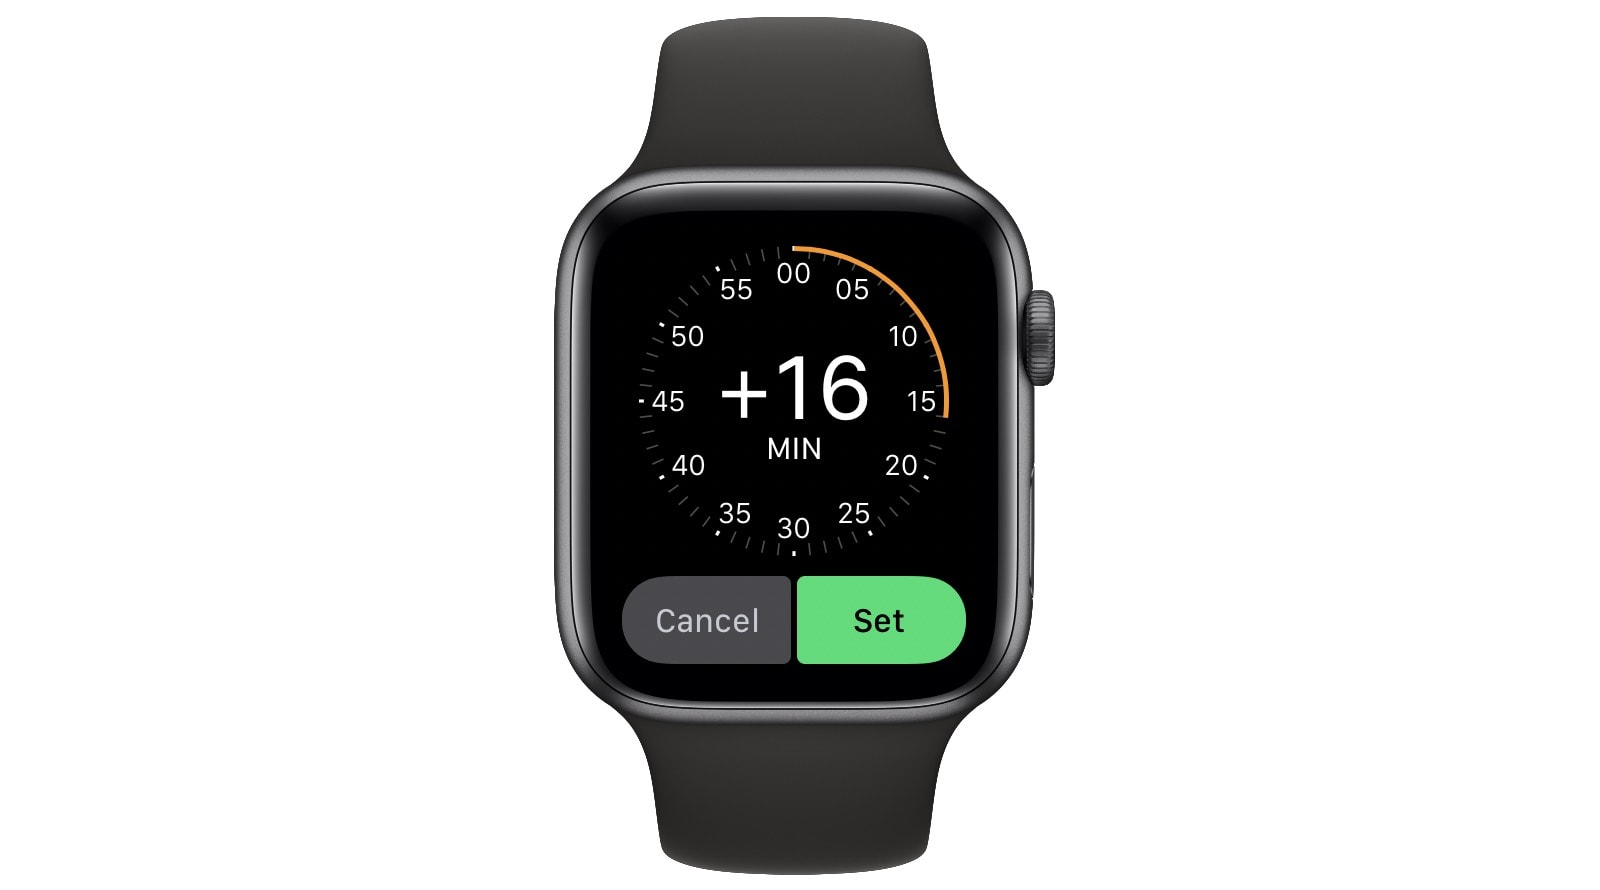 You can decrease the accuracy of your Apple Watch by up to 59 minutes.